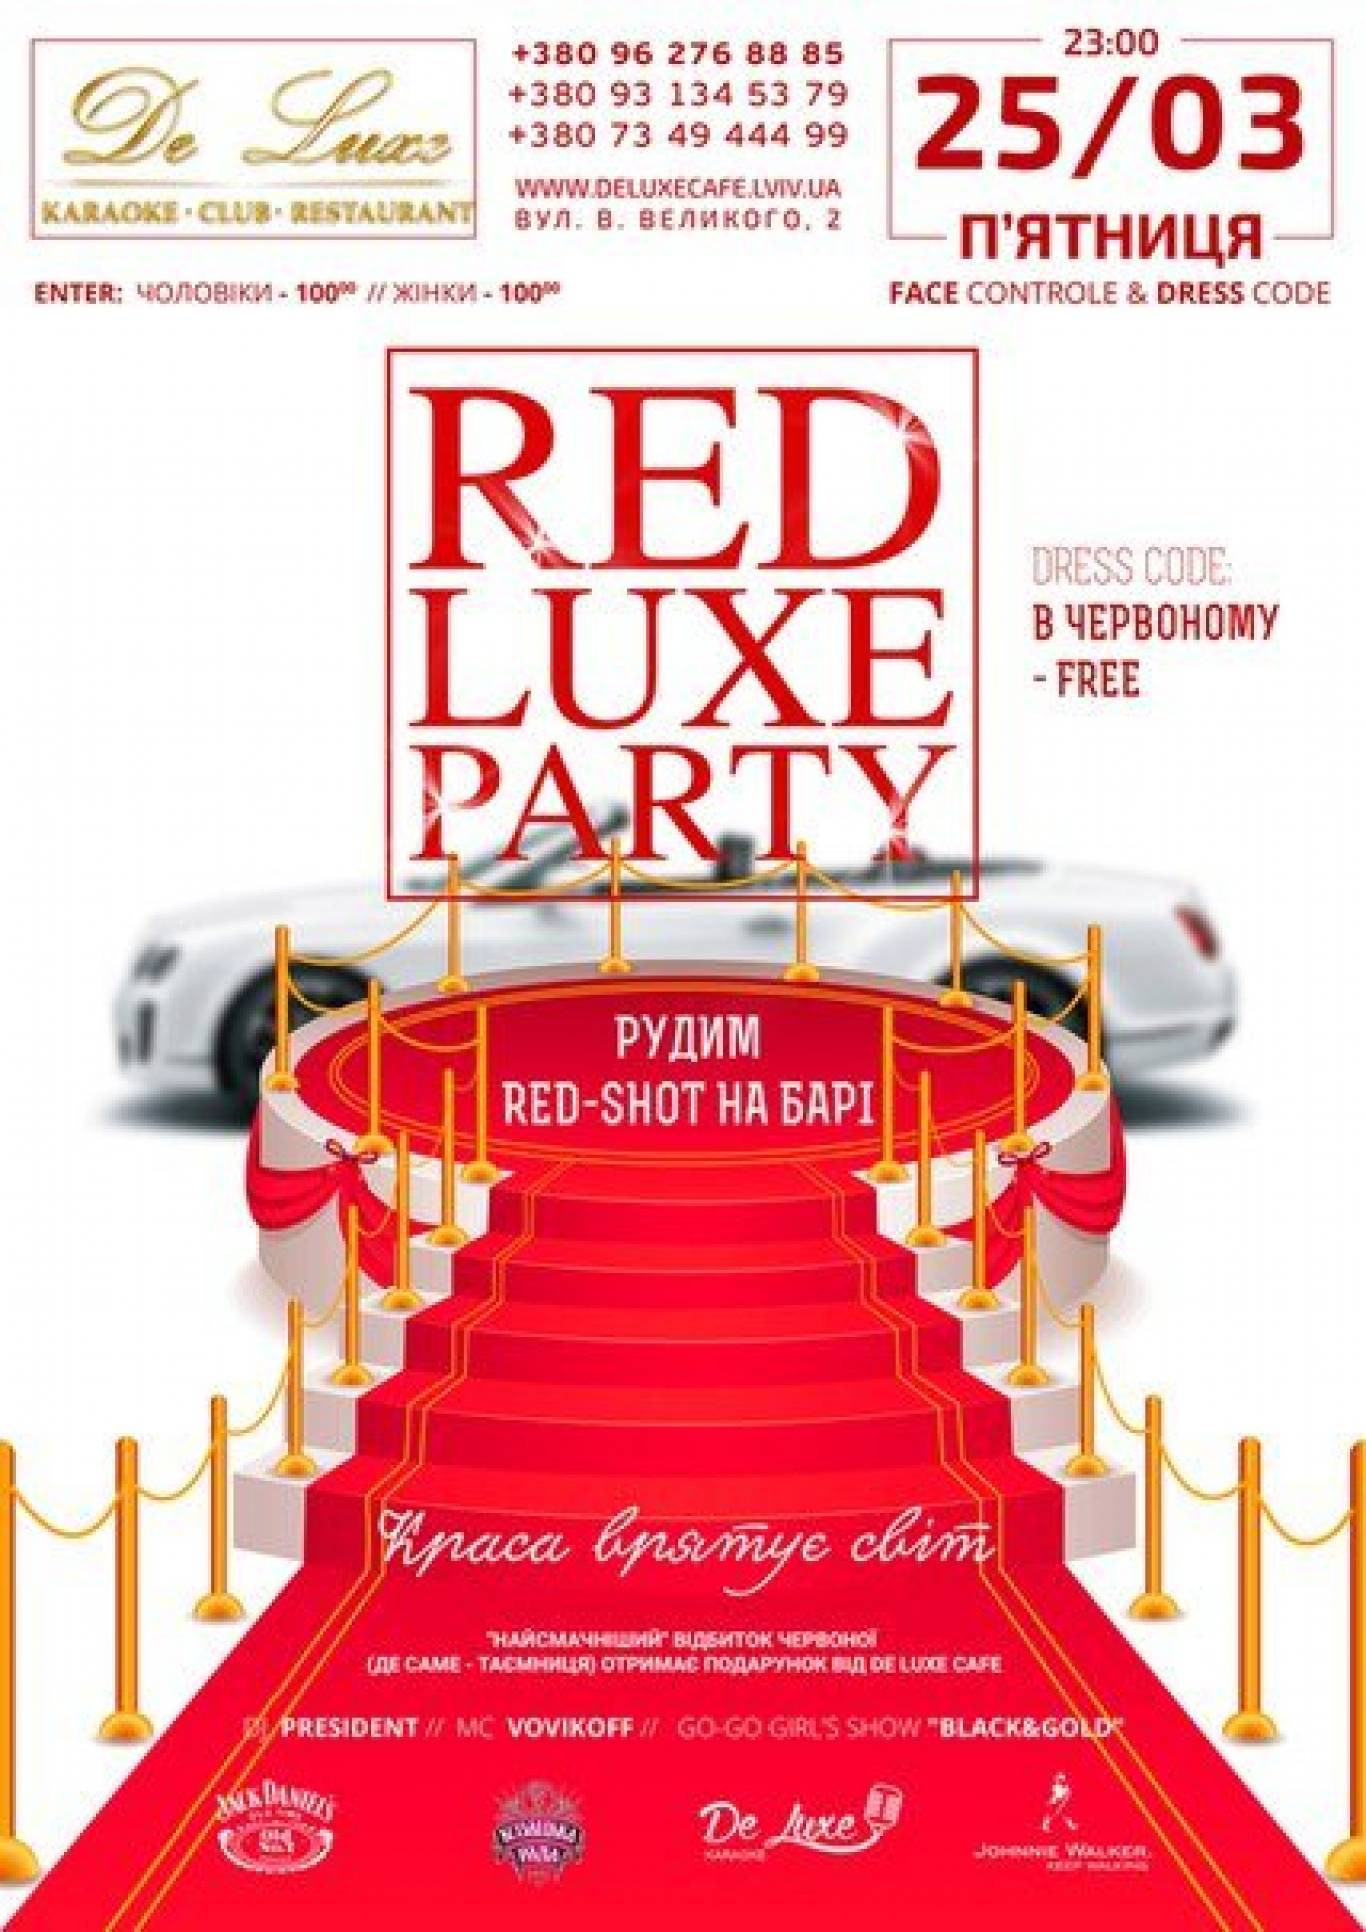 Вечірка Red luxe party